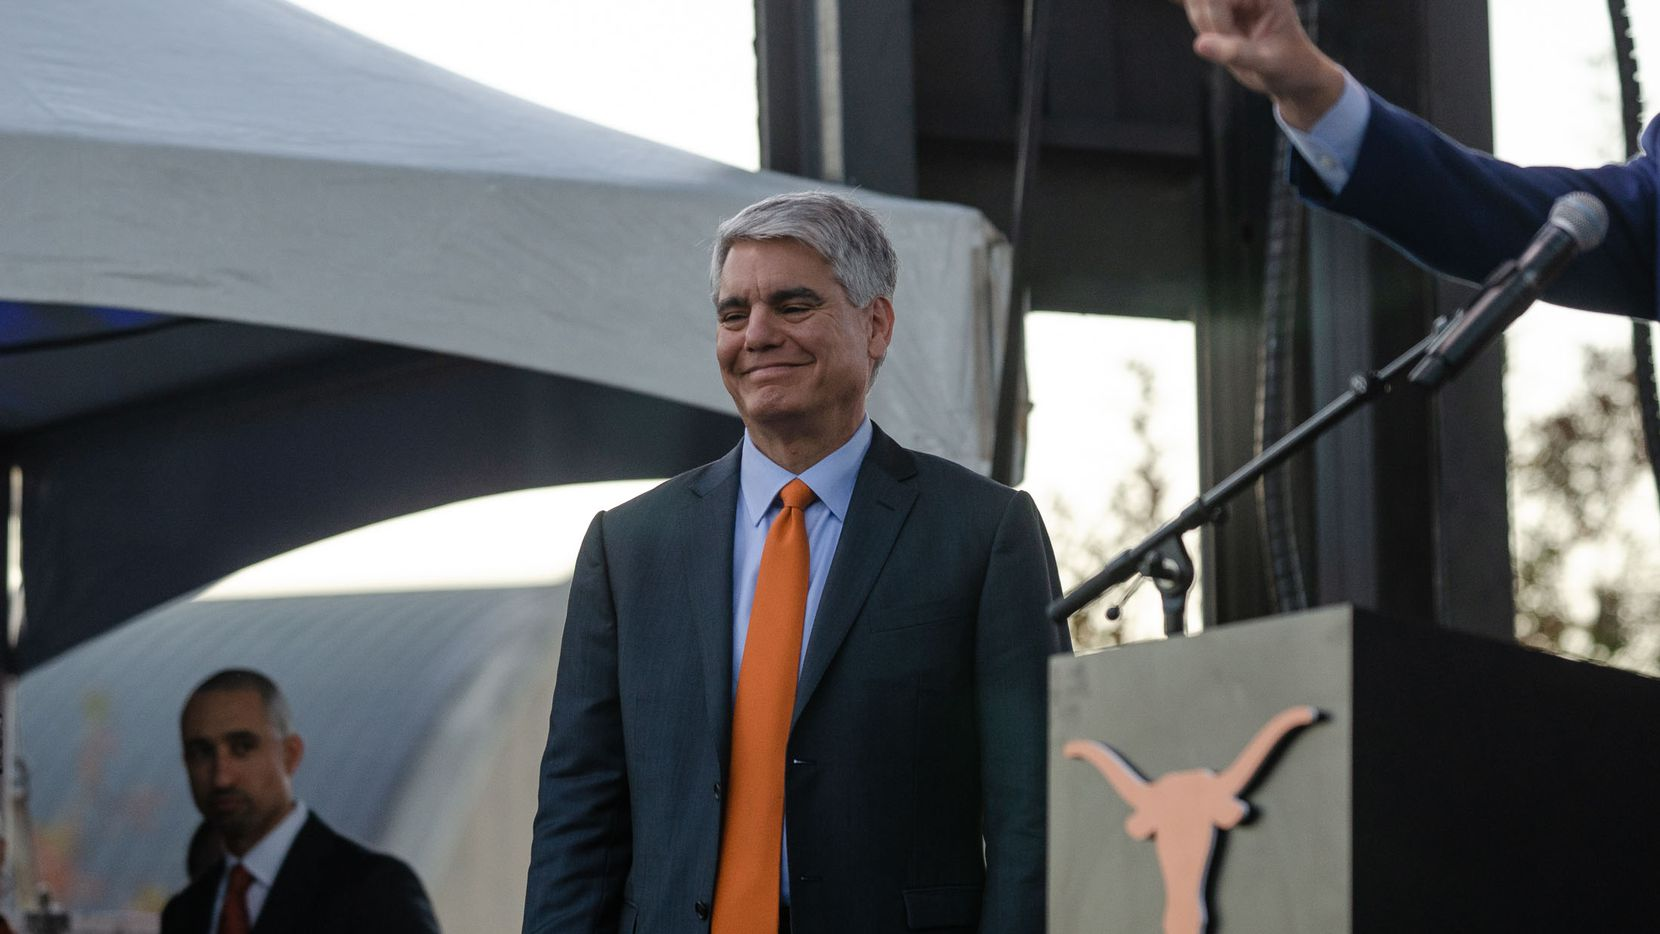 Greg Fenves, the president of the University of Texas at Austin, appeared Dec. 3 during the Moody Center groundbreaking ceremony.